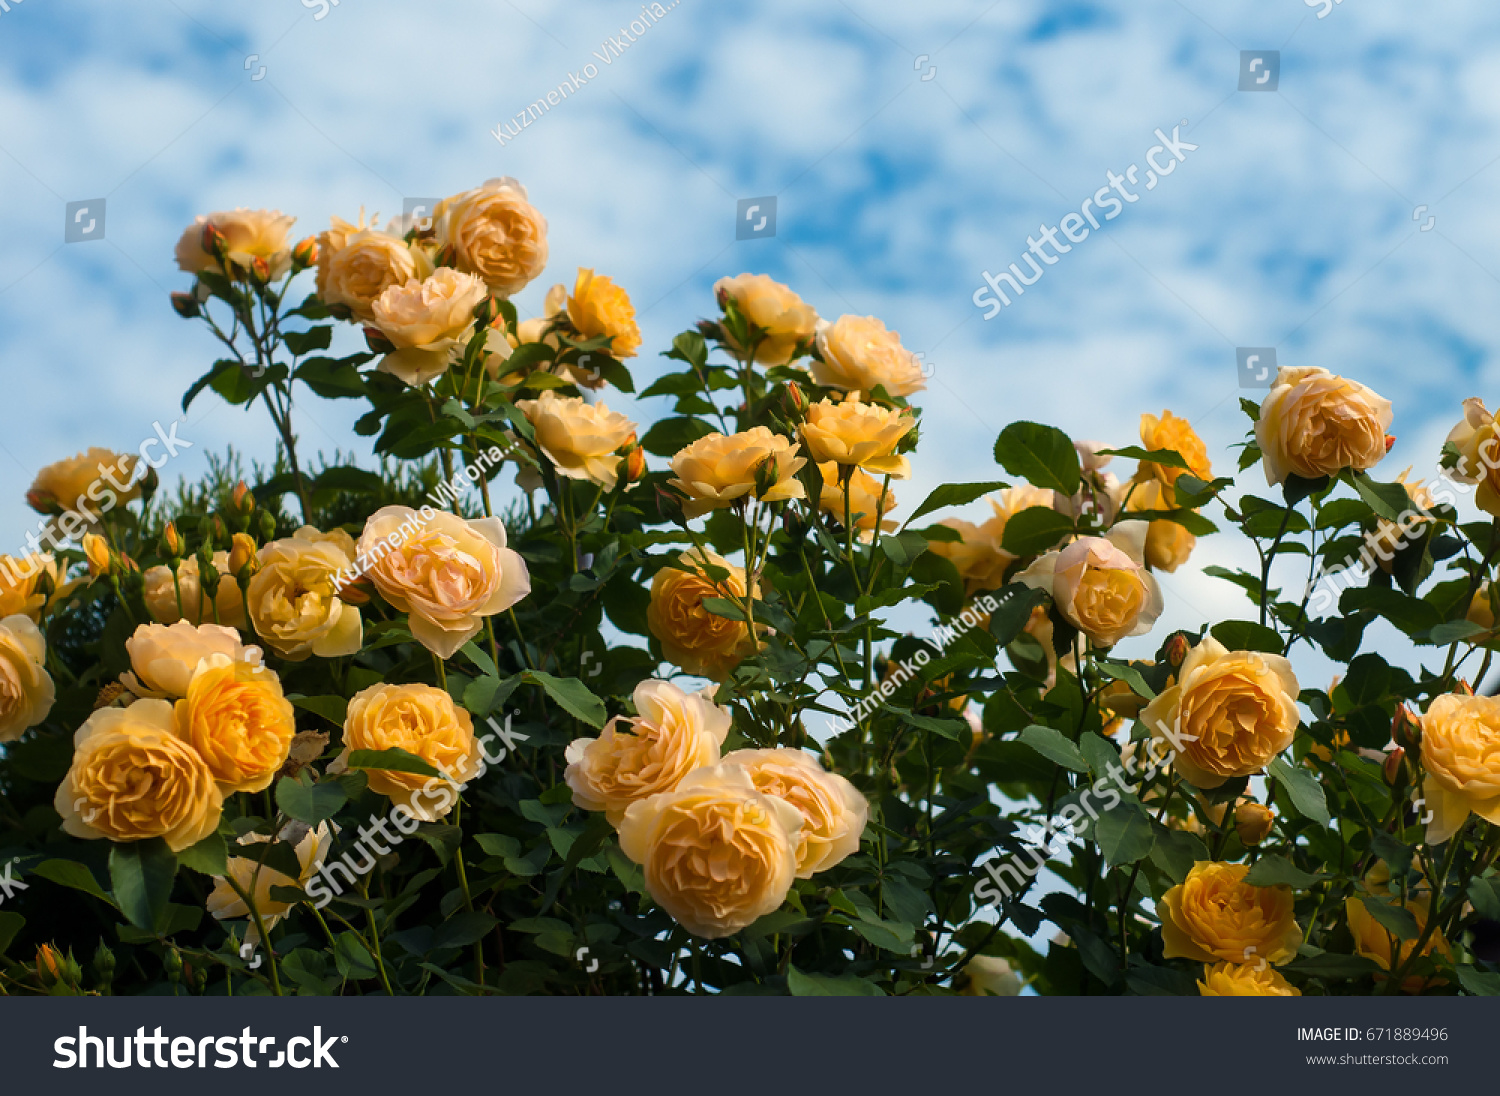 Yellow Roses On Blue Sky Background Stock Photo Edit Now 671889496